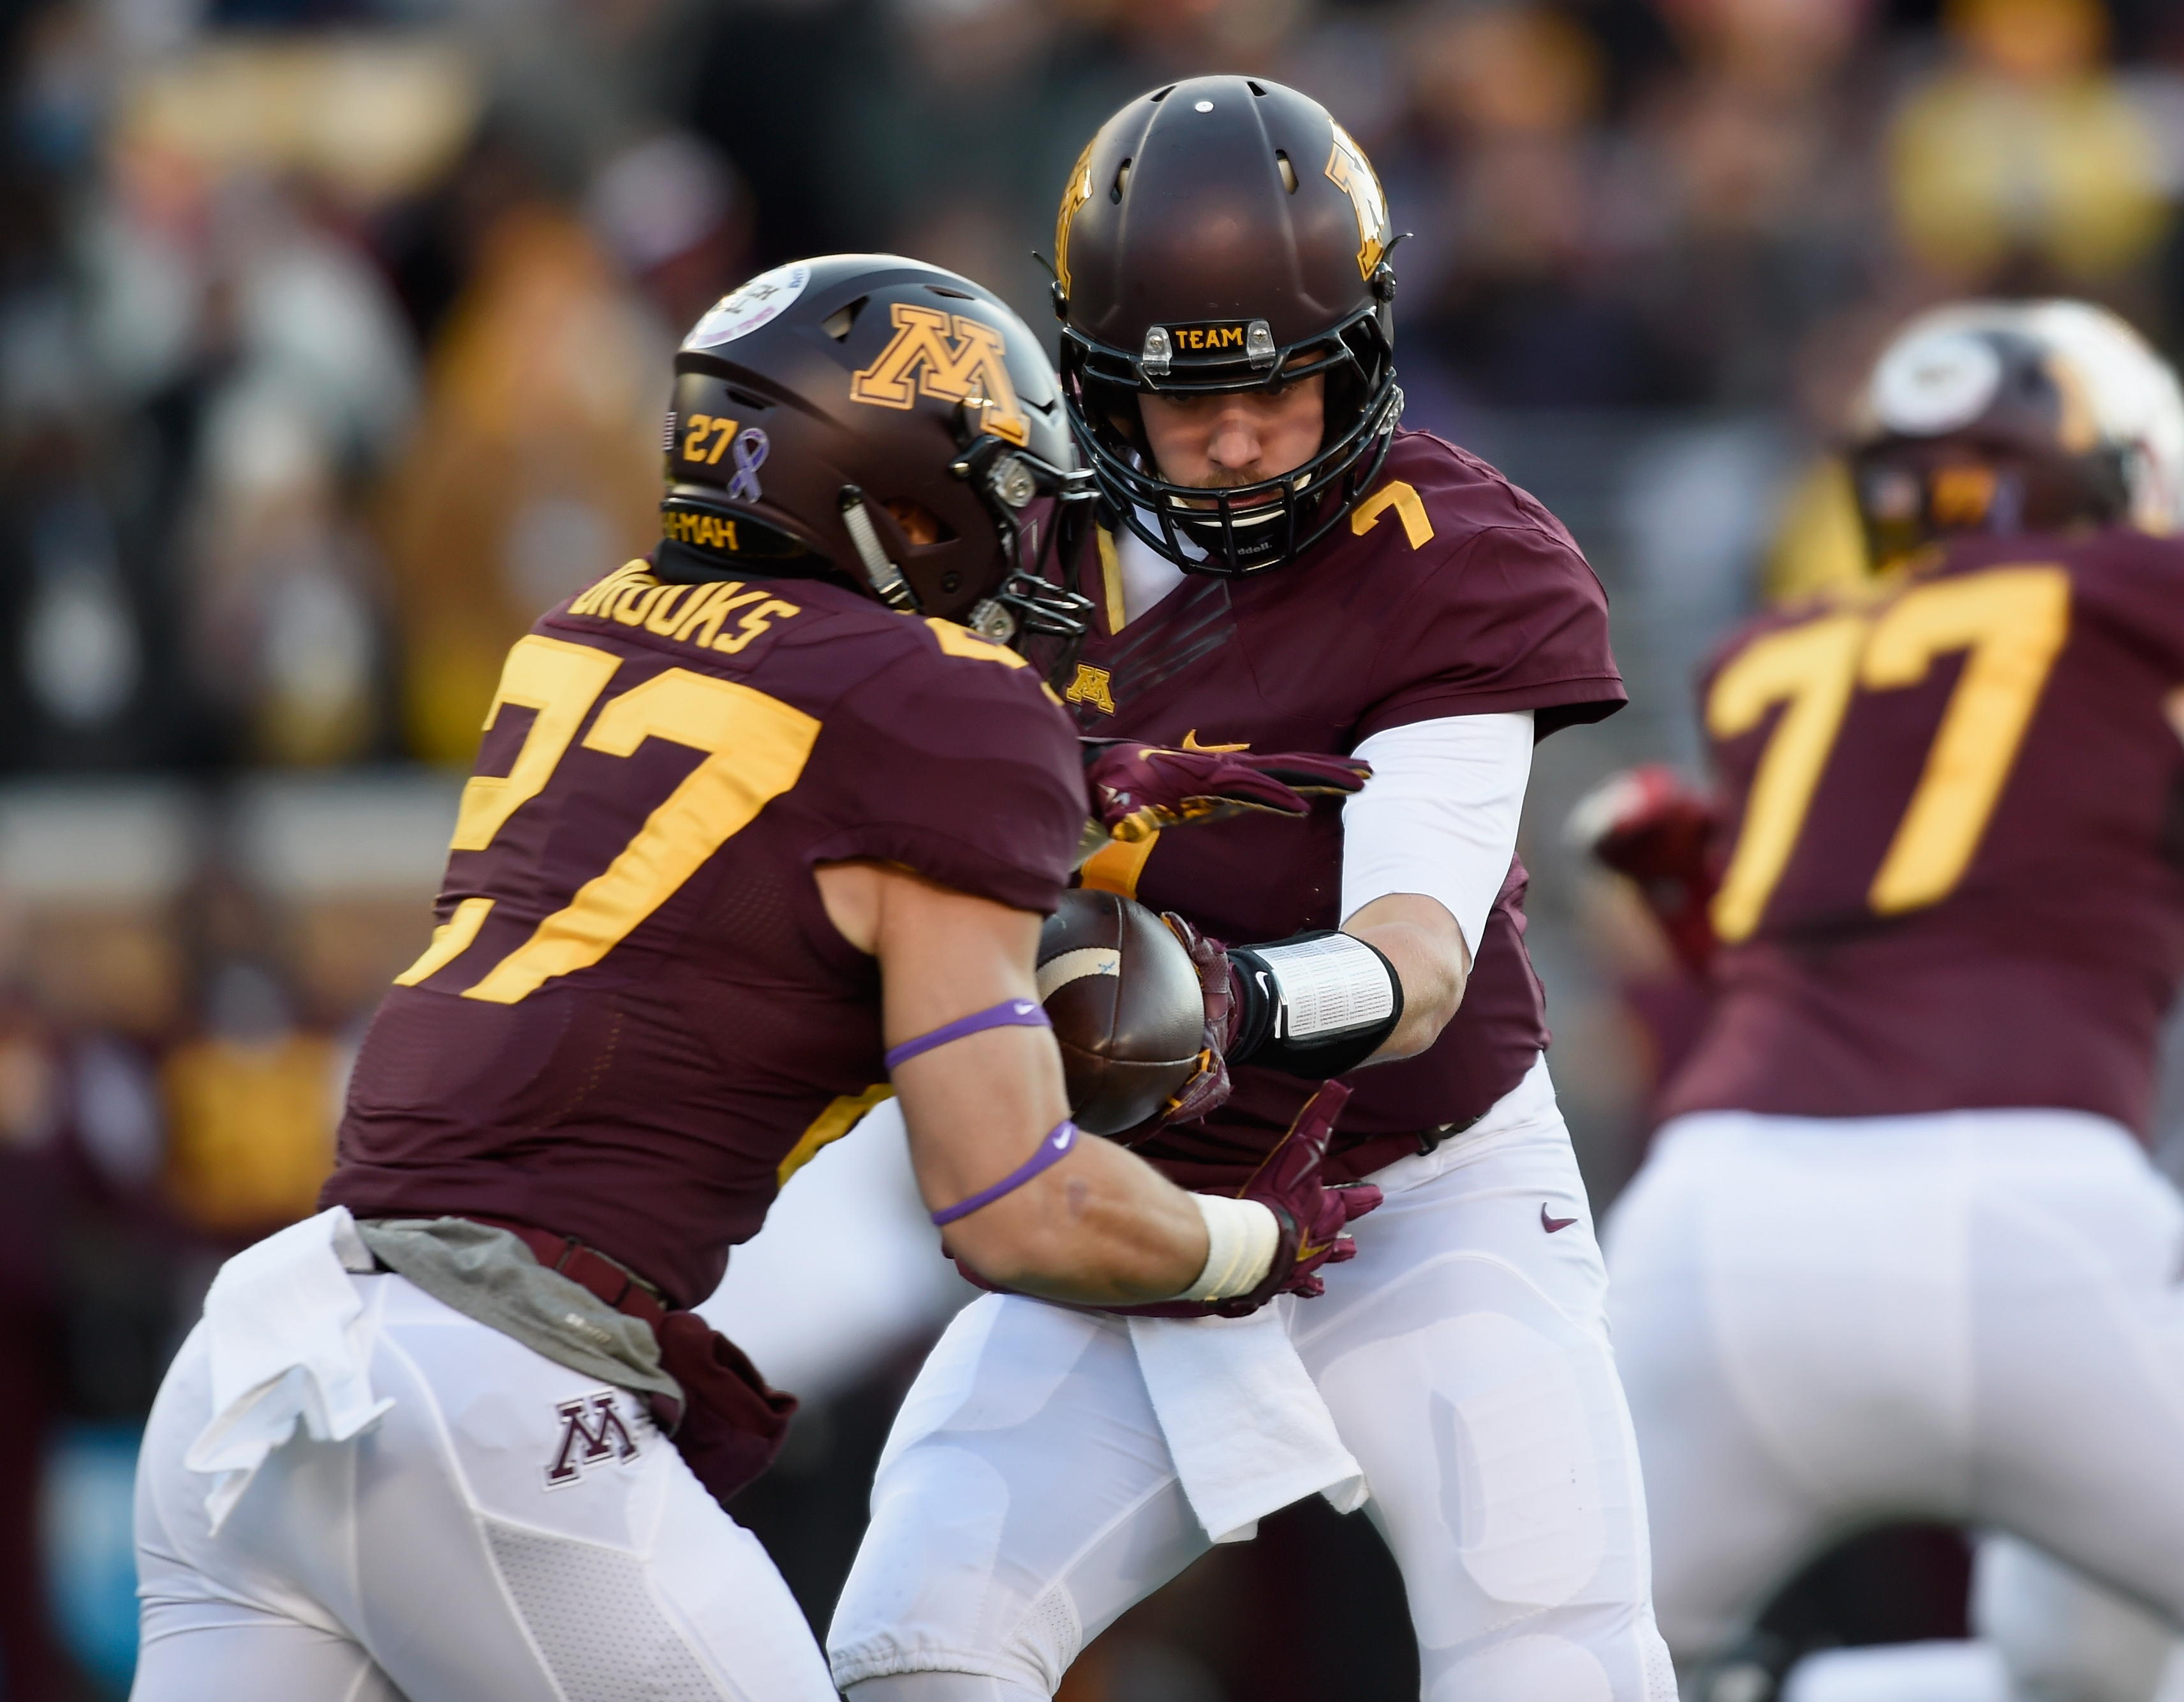 WATCH: Gophers Football Fan Attempts to Field Punt During Spring Practice